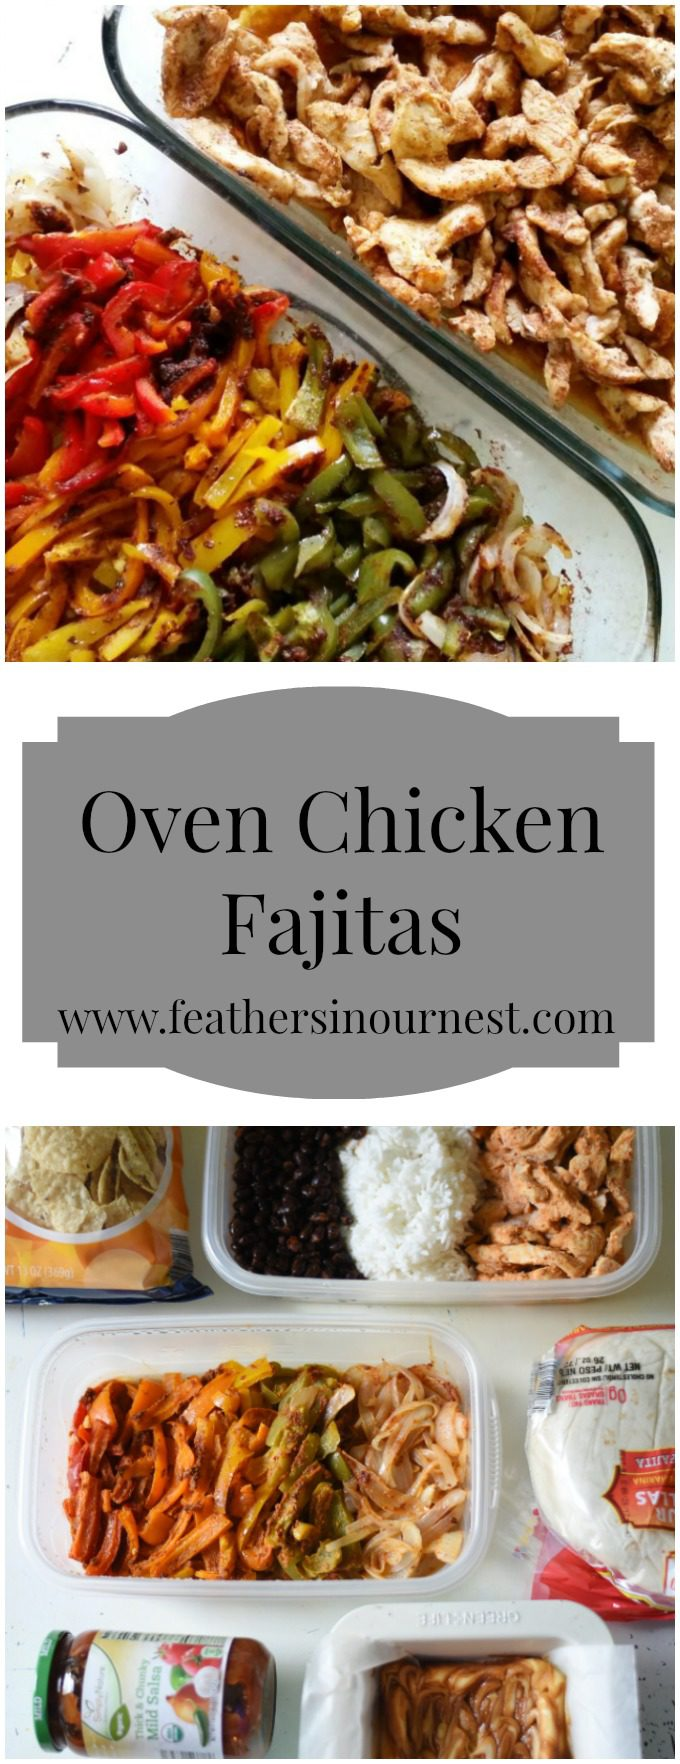 Oven Chicken Fajitas: Go-To Recipe for Hospitality, Meal Ministry, and for New Moms! Great Freezer Meal Too! | Feathers in Our Nest